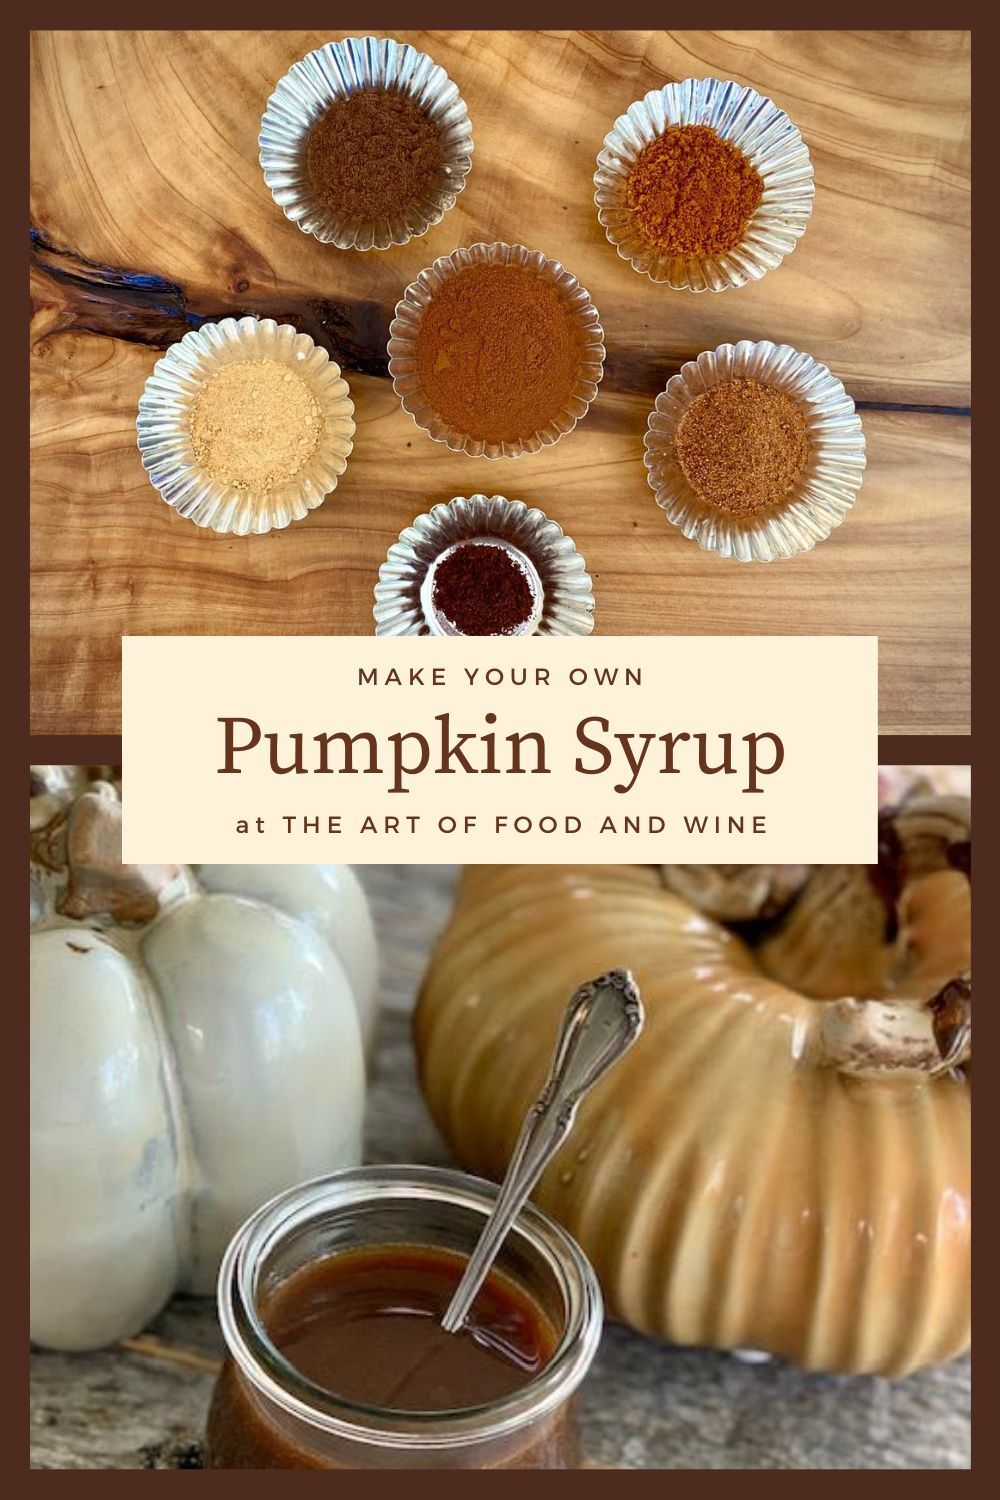 Easy Pumpkin Spice Syrup The Art Of Food And Wine Recipe In 2020 Homemade Pumpkin Spice Syrup Pumpkin Syrup Pumpkin Spice Syrup